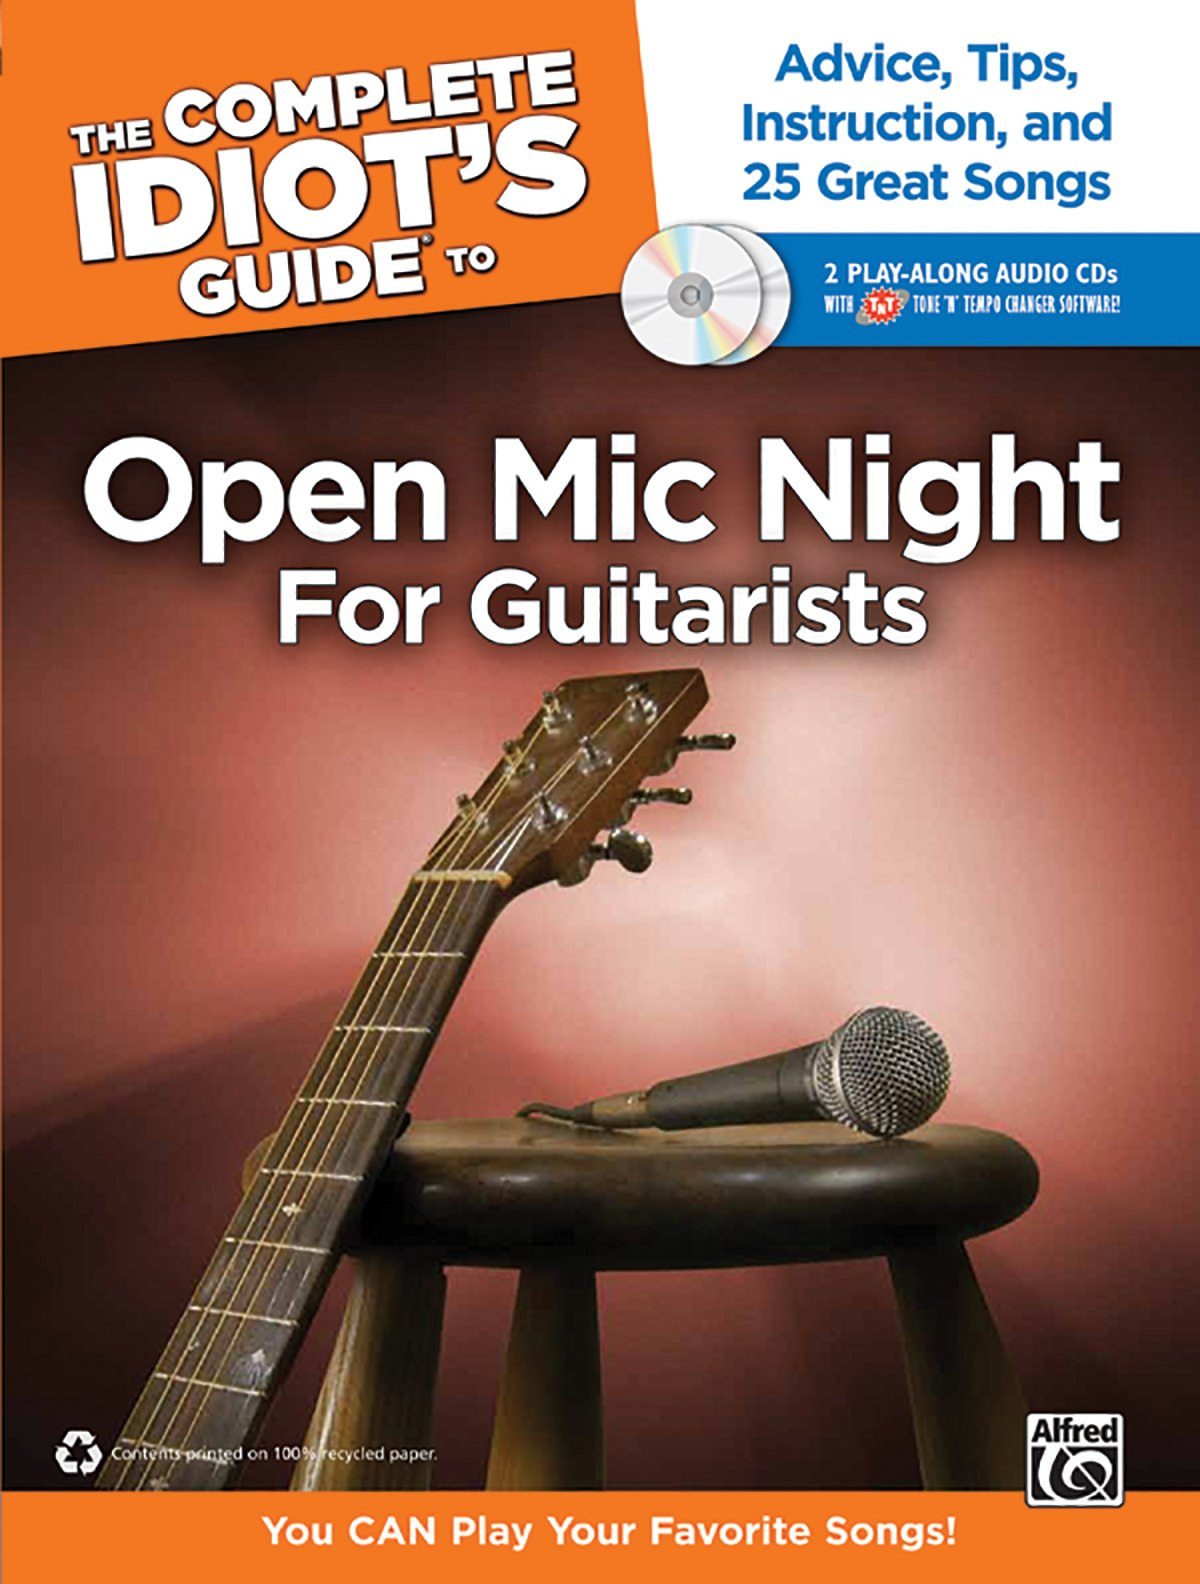 the-complete-idiot-s-guide-to-open-mic-night-for-guitarists-advice-tips-instruction-and-25-great-songs-book-2-enhanced-cds